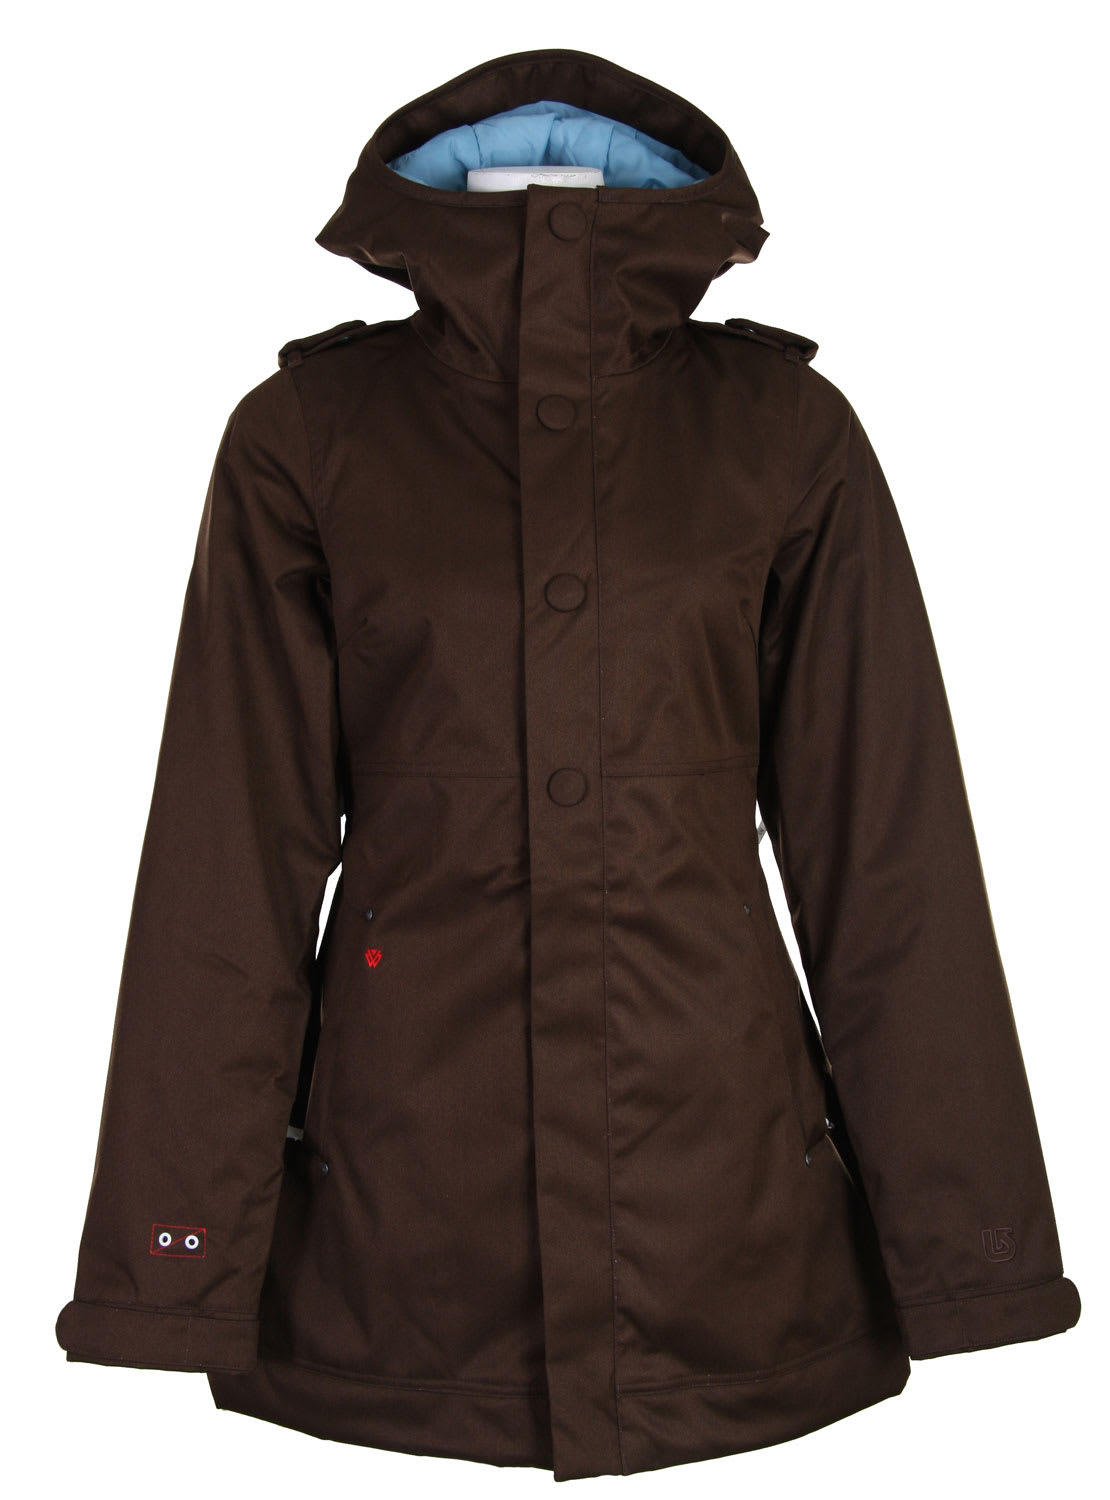 Burton coats for women